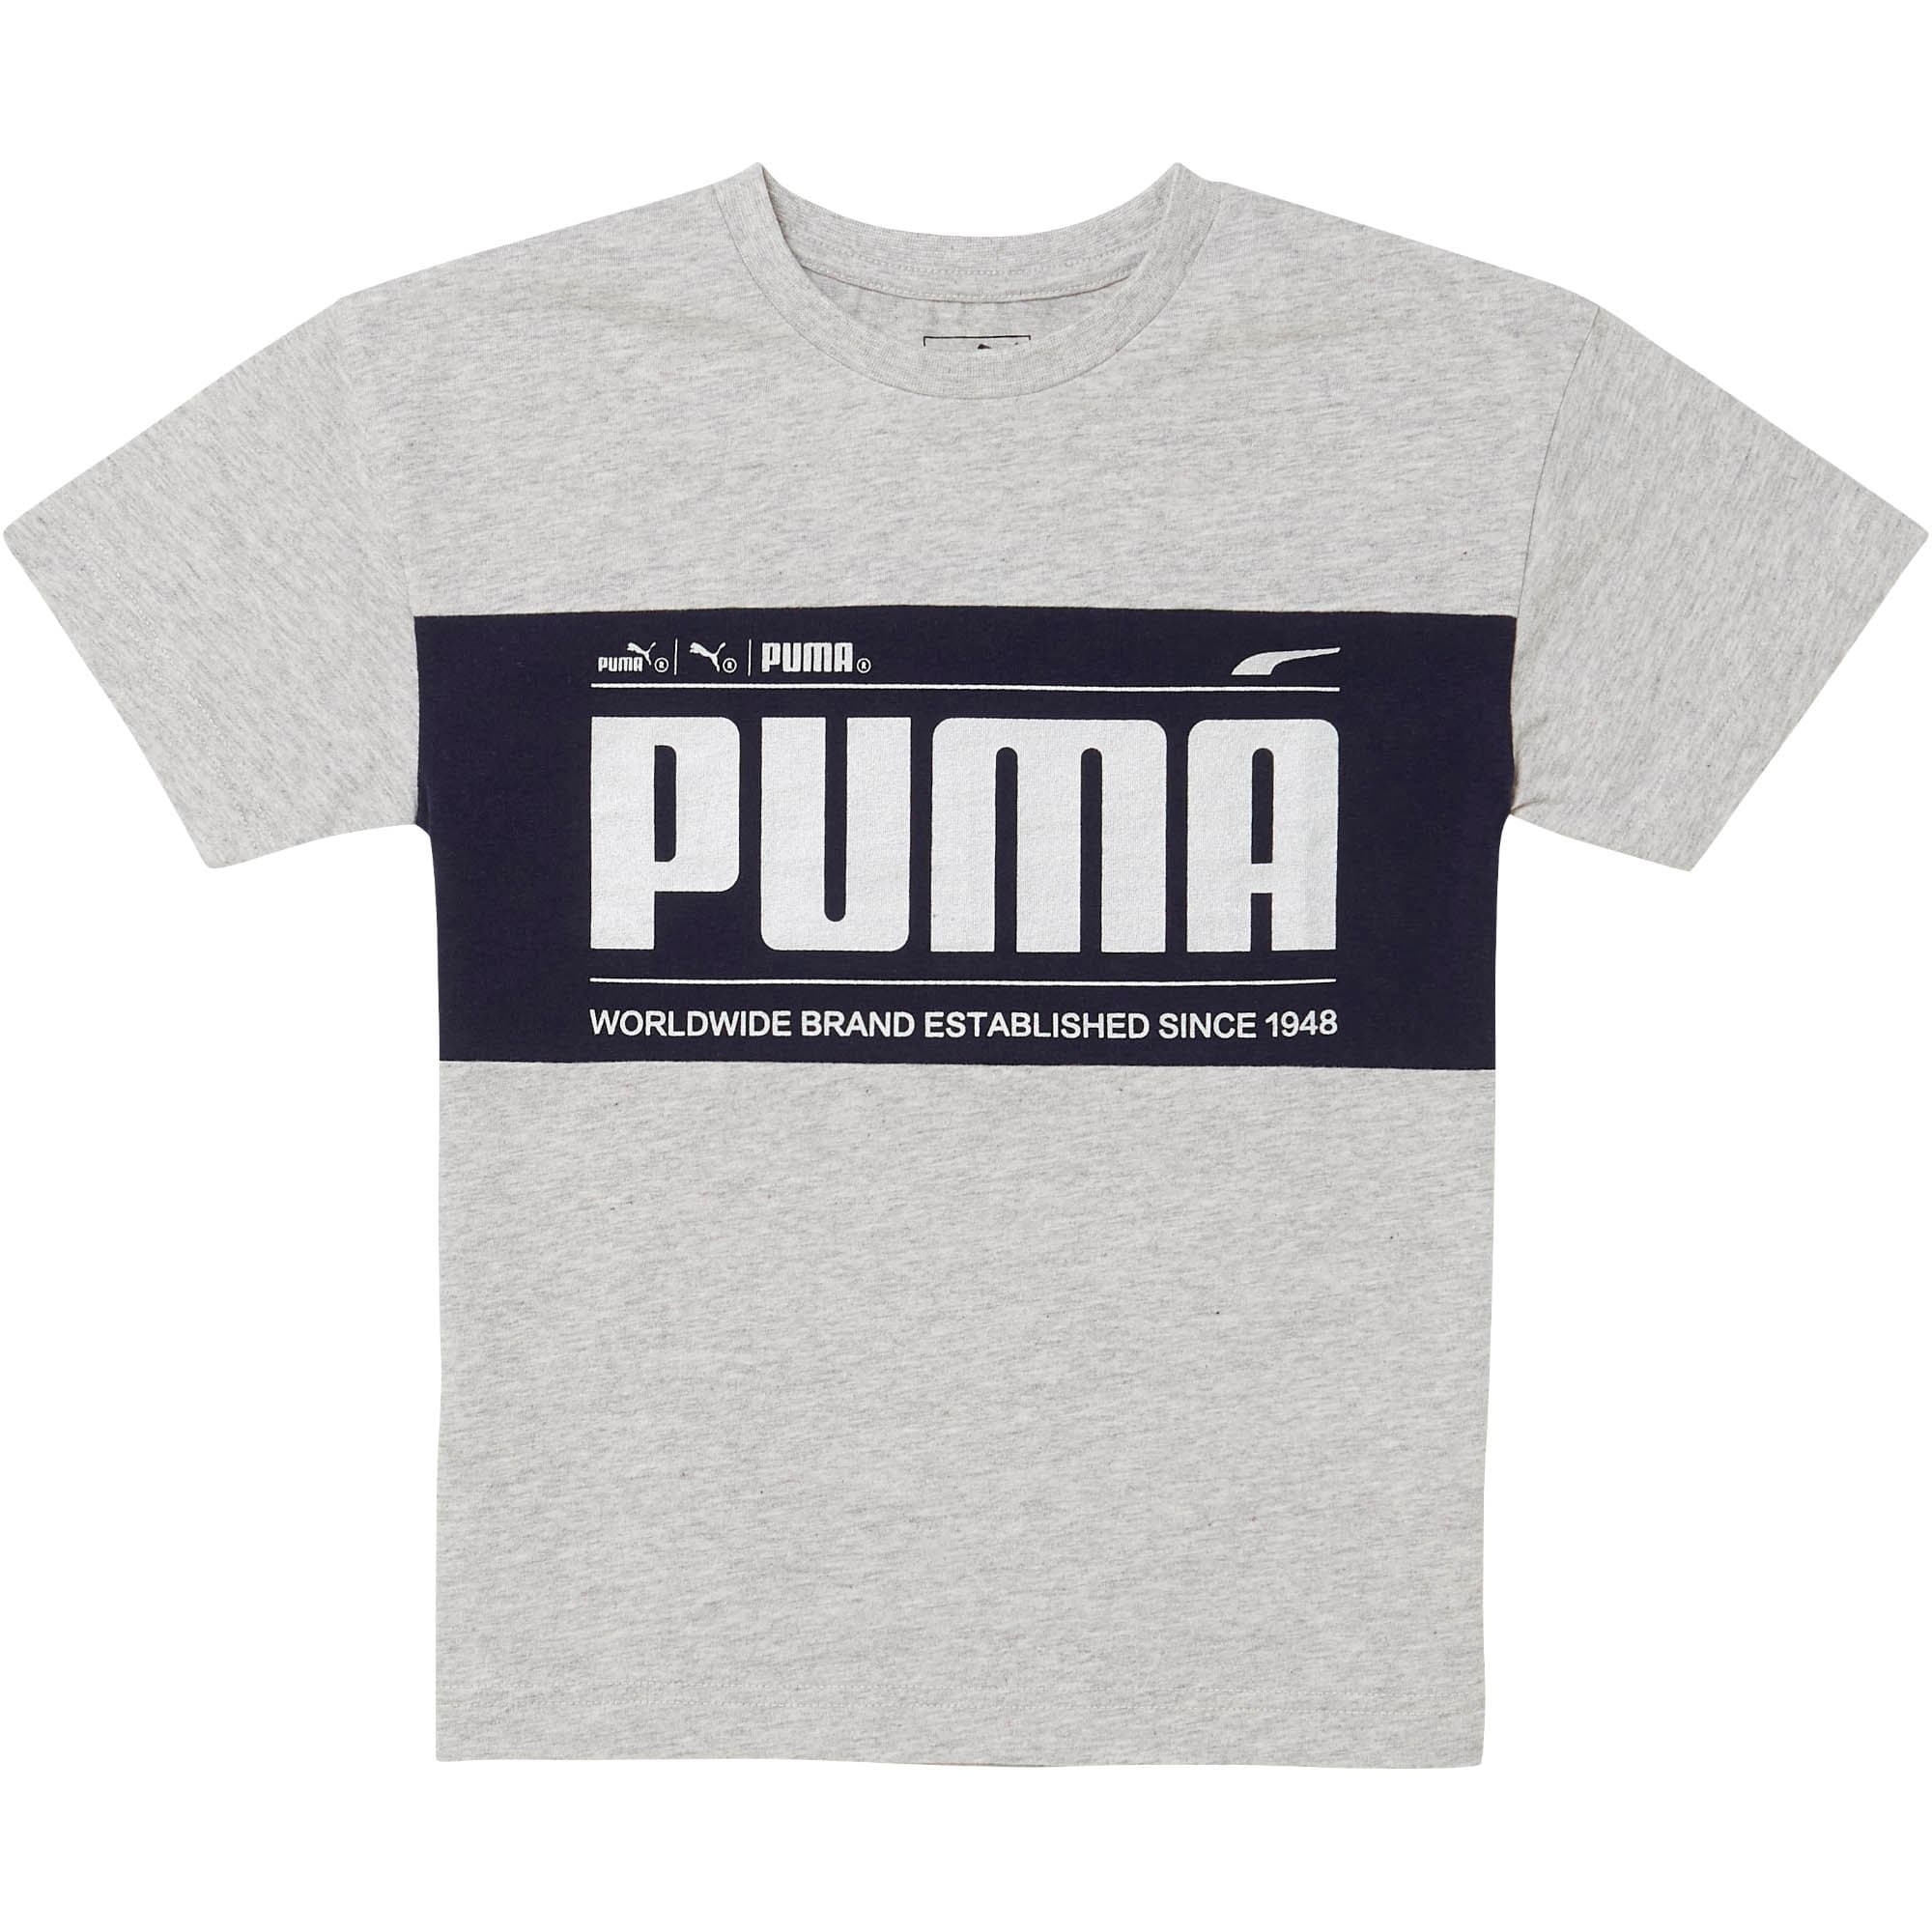 Thumbnail 1 of Little Kids' Oversized Tee, LT HEATHER GREY, medium